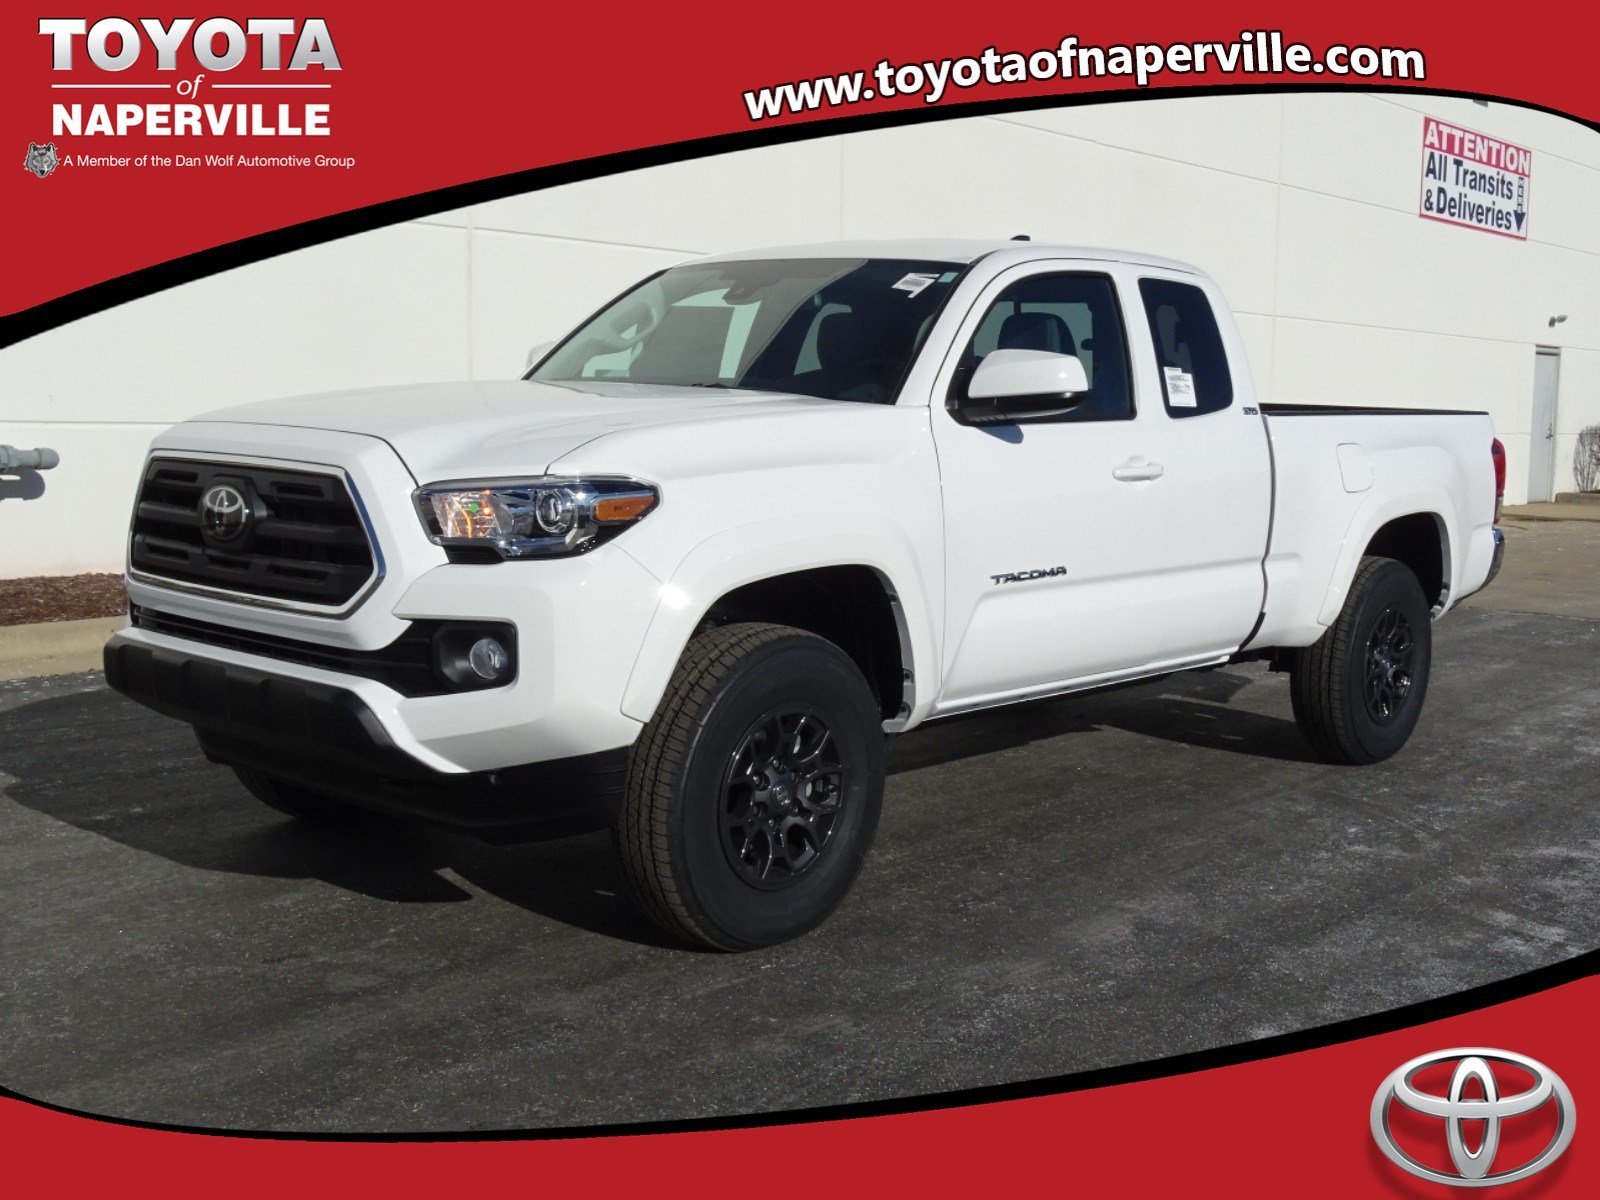 new 2018 toyota tacoma sr5 4d access cab in naperville t26904 toyota of naperville. Black Bedroom Furniture Sets. Home Design Ideas